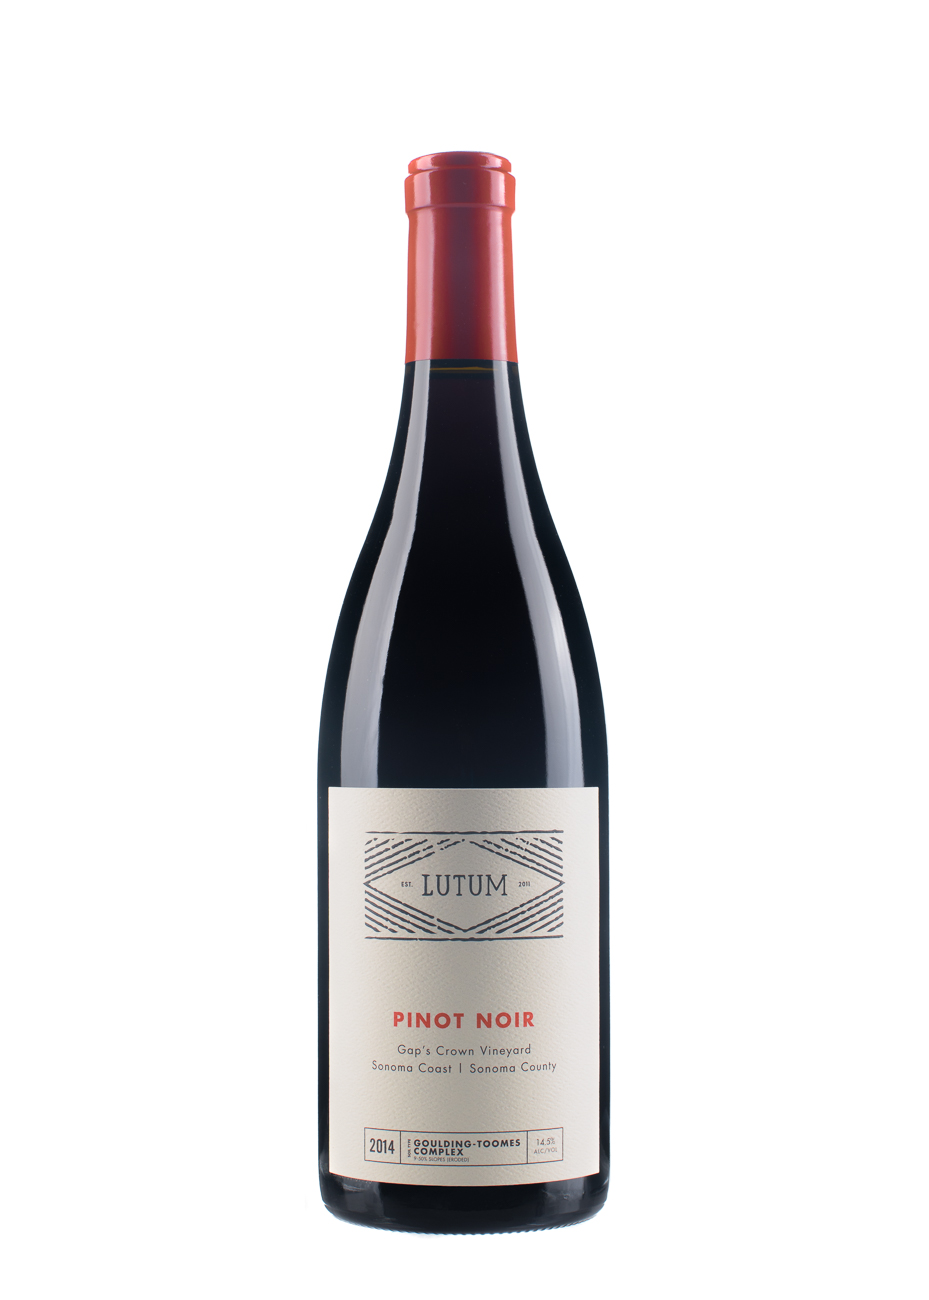 2014 Gap's Crown Vineyard Pinot Noir  - Lutum Wines